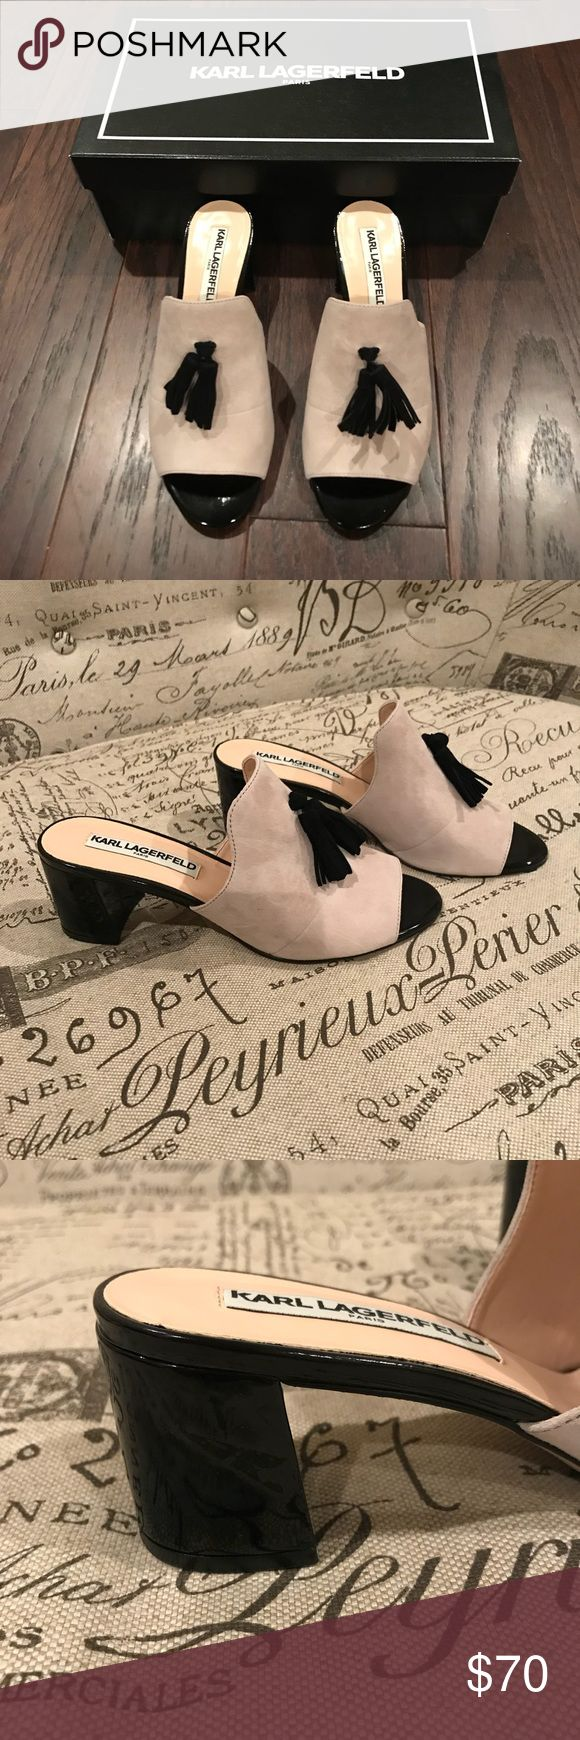 NIB Karl Lagerfeld Mules 6 1/2 Classy, Classy, Classy! 🥂. Gorgeous NIB, only worn in the store!  Cream suede and black patent leather mules by Karl Lagerfeld. Block heel 2 inches, box included!  Don't pass these up!! 💞 Karl Lagerfeld Shoes Mules & Clogs